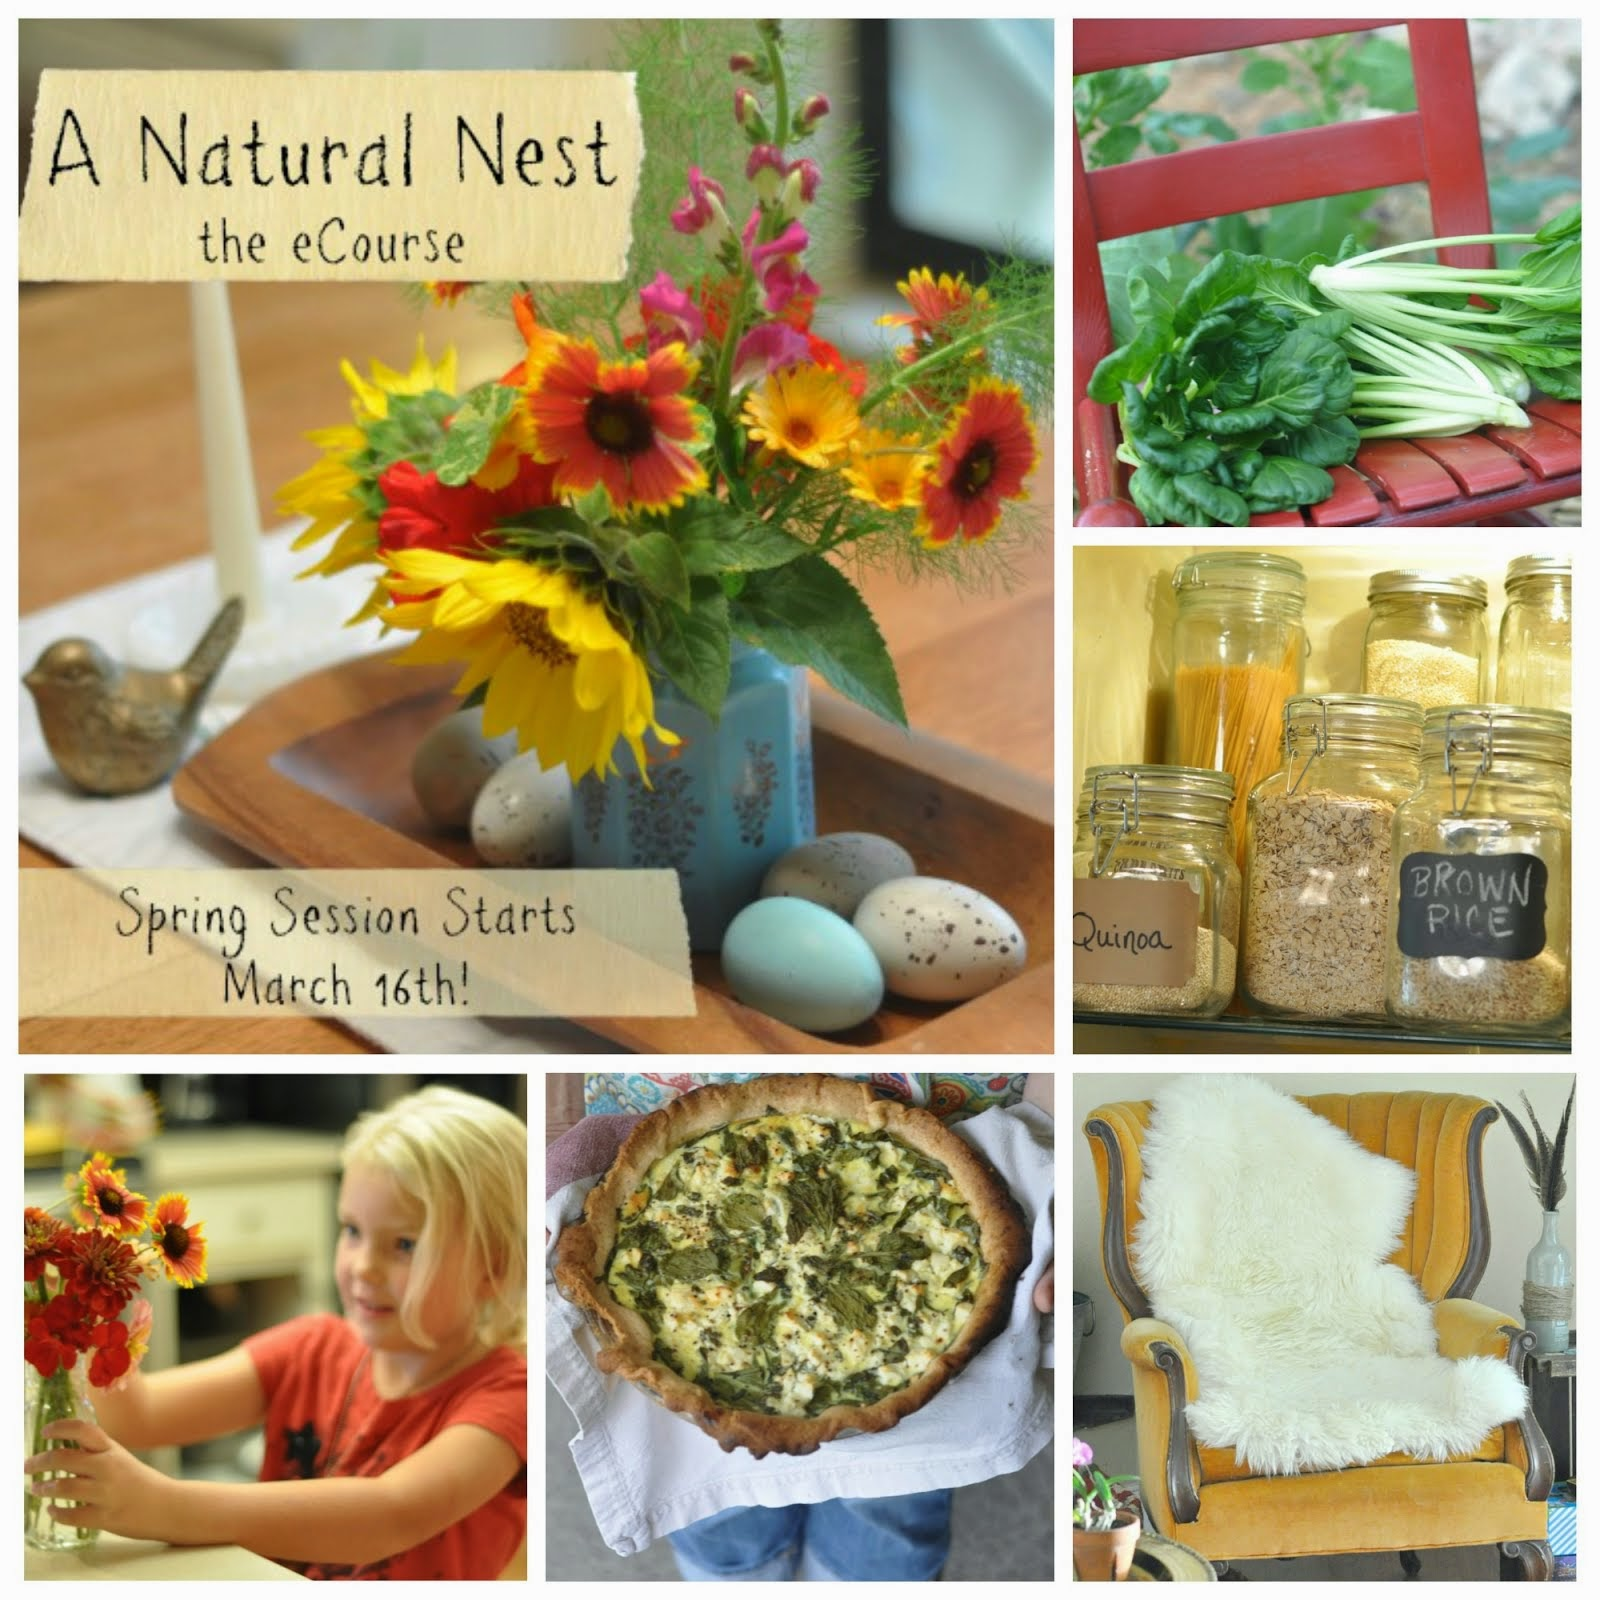 NEW! A Natural Nest, the eCourse